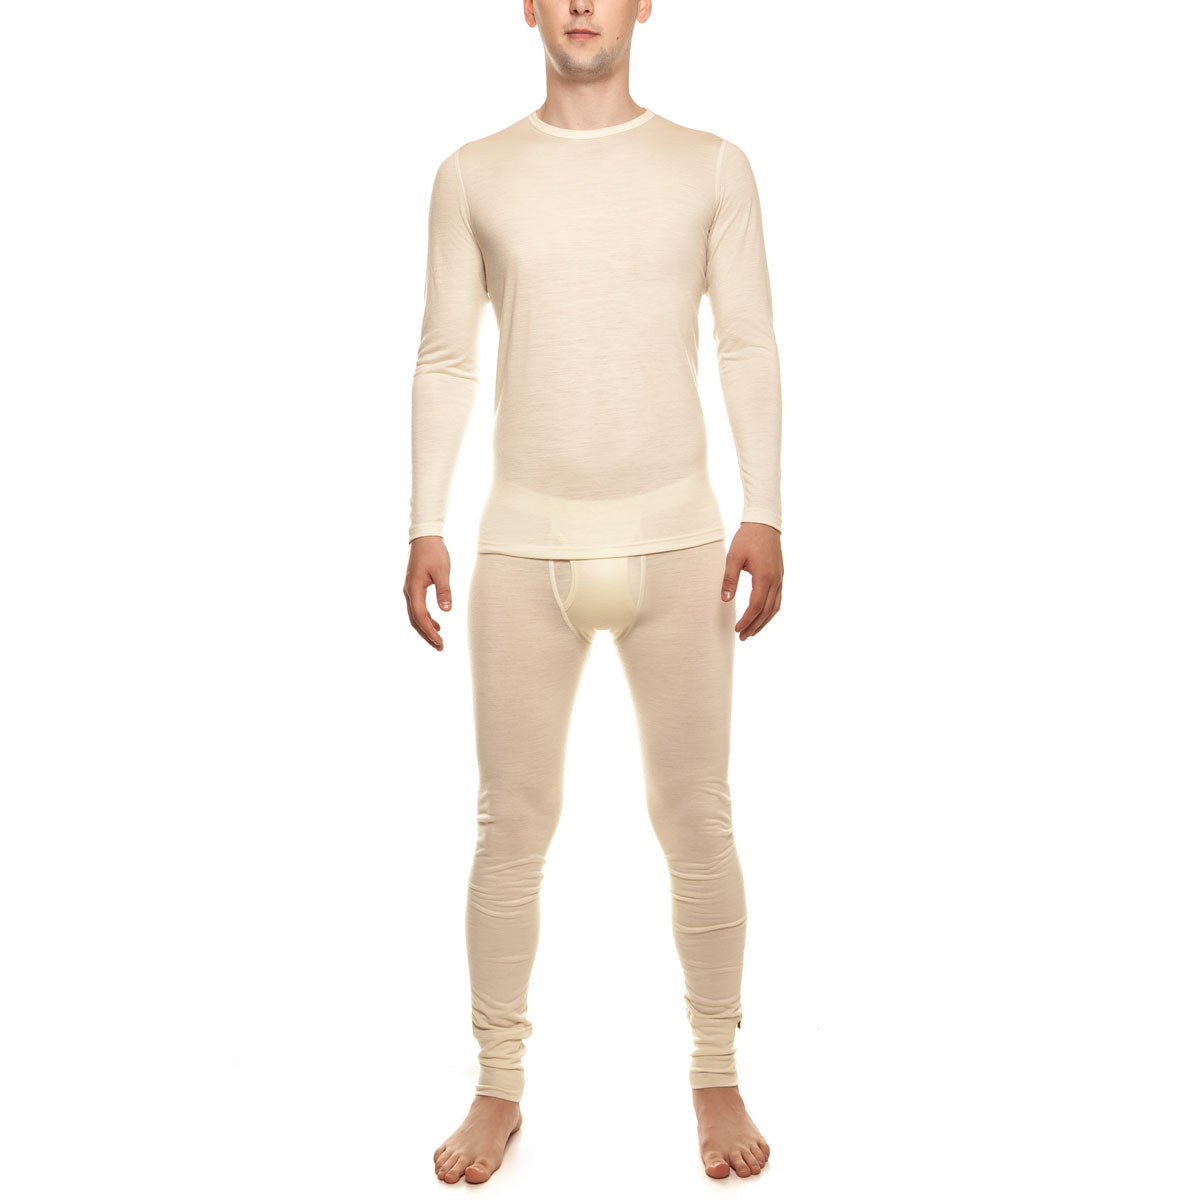 menique Men's Merino 160 Long Sleeve Set Natural Color